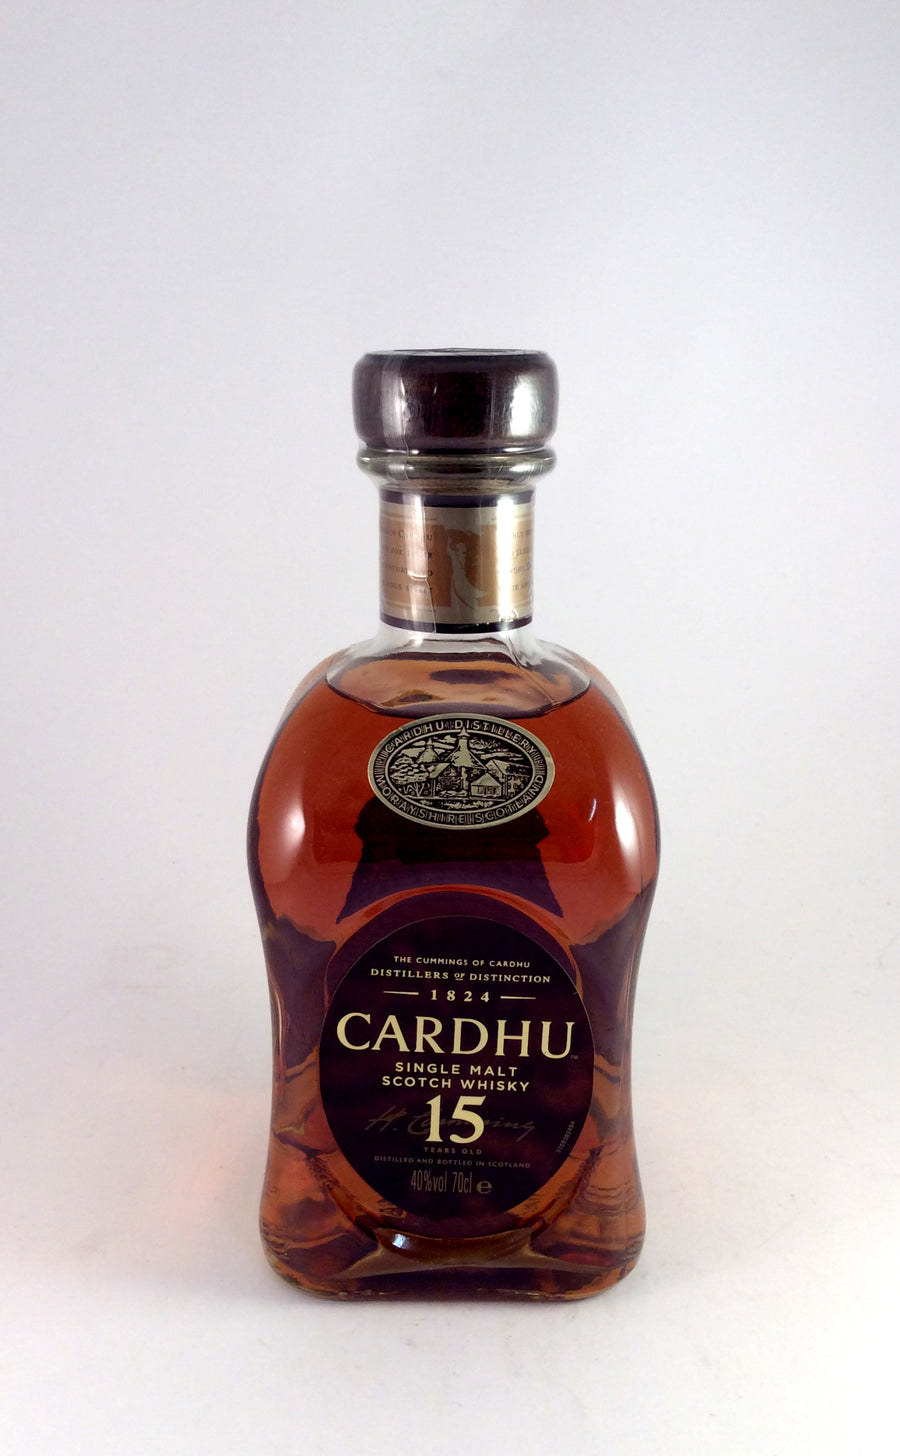 Cardhu 15 year Scotch Whisky